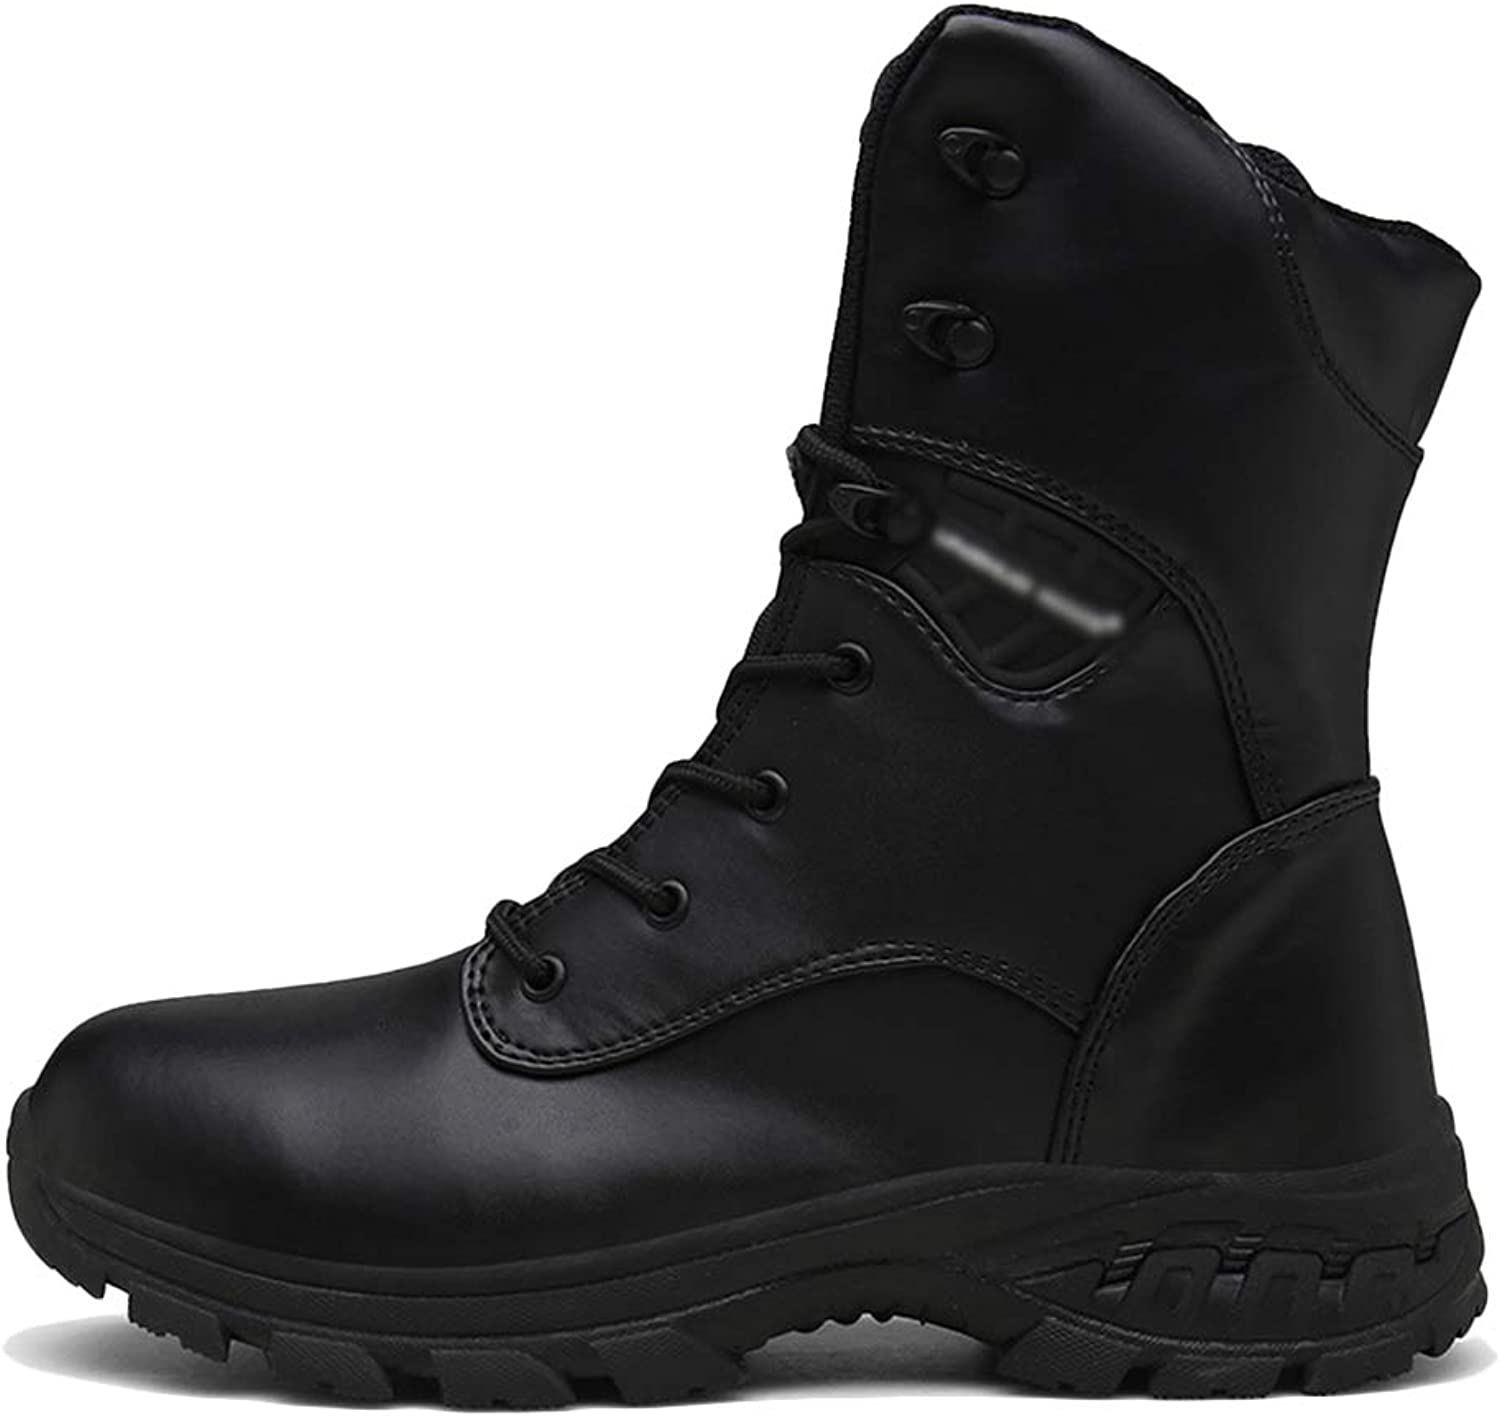 LIUYL men's Combat Boot Military Police Boot Climbing shoes Walking Work Ankle Boots Camo Desert tactical Outdoor Waterproof Boot,Black-42